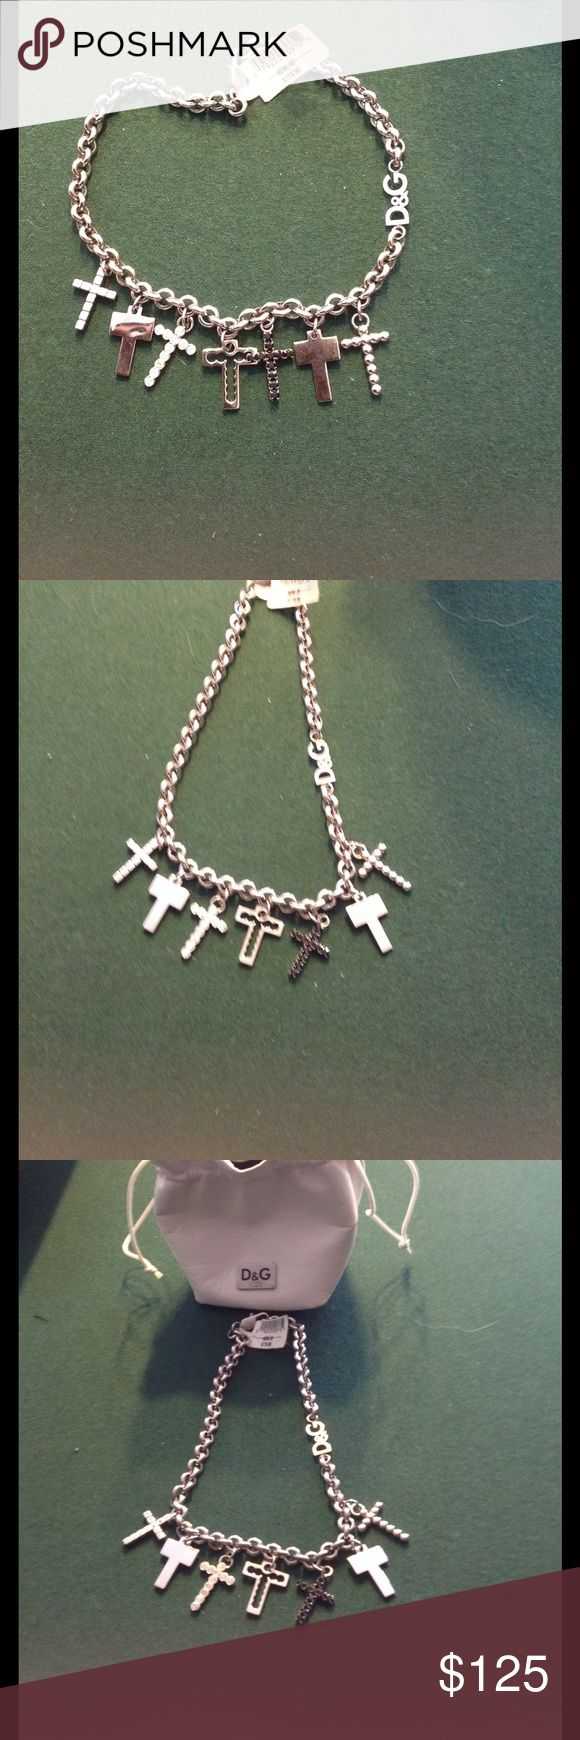 16 inch D&G silver cross necklace. 16 inch Silver D&G cross necklace with pouch. D&G Jewelry Necklaces